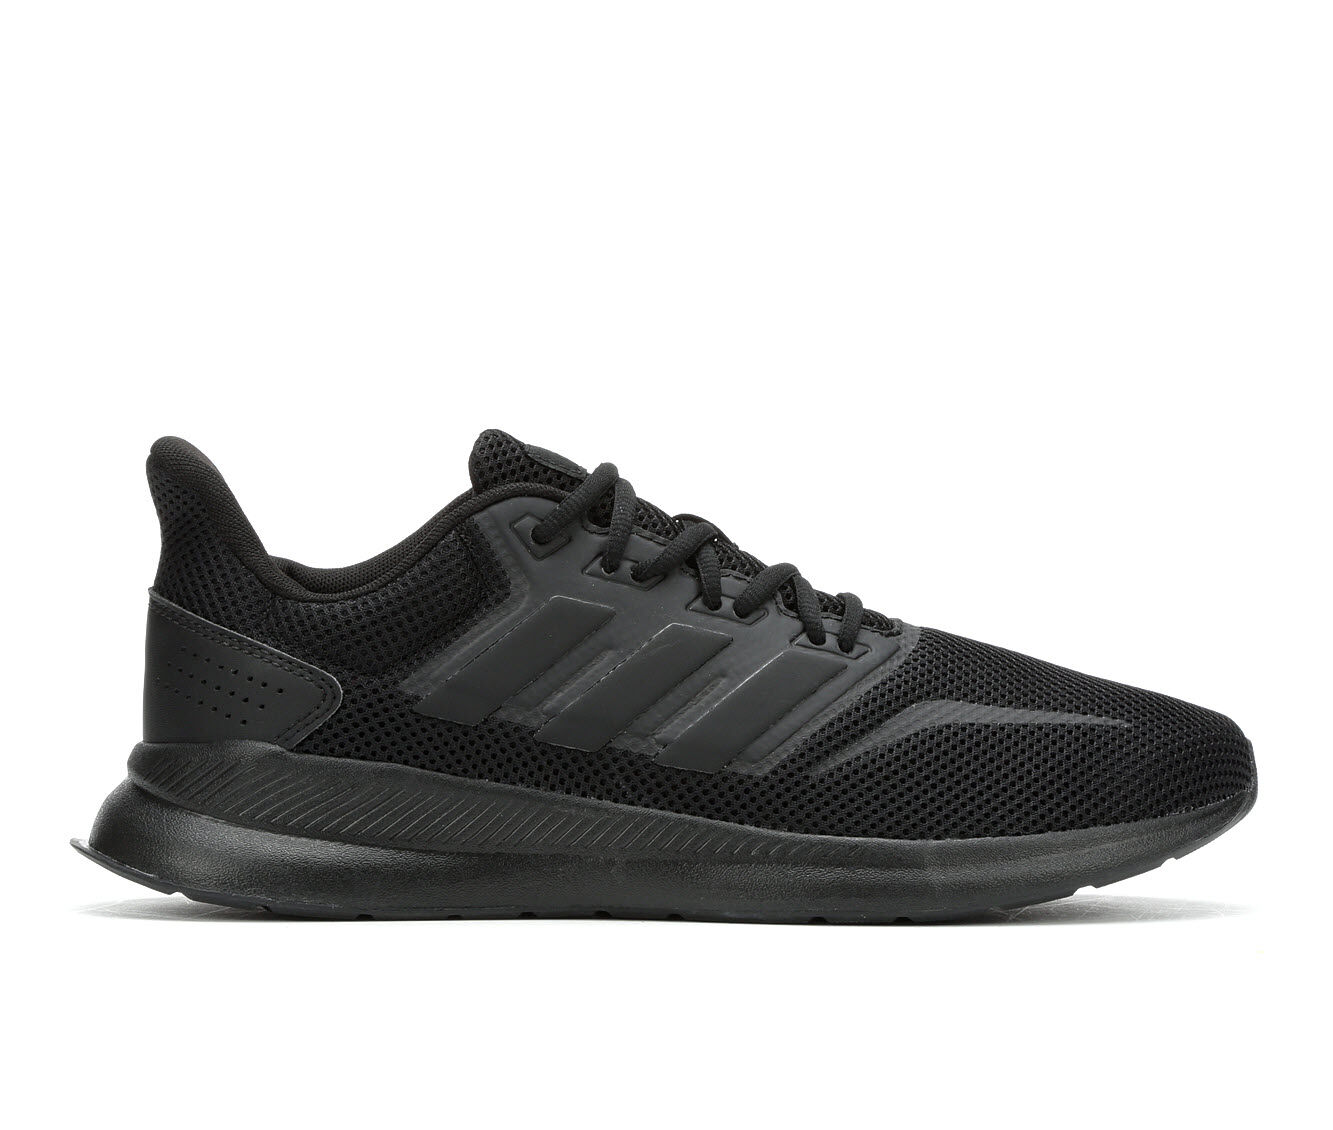 Adidas Women's Adidas RunFalcon Athletic Shoes (Black Size 5) from Shoe Carnival | Shop